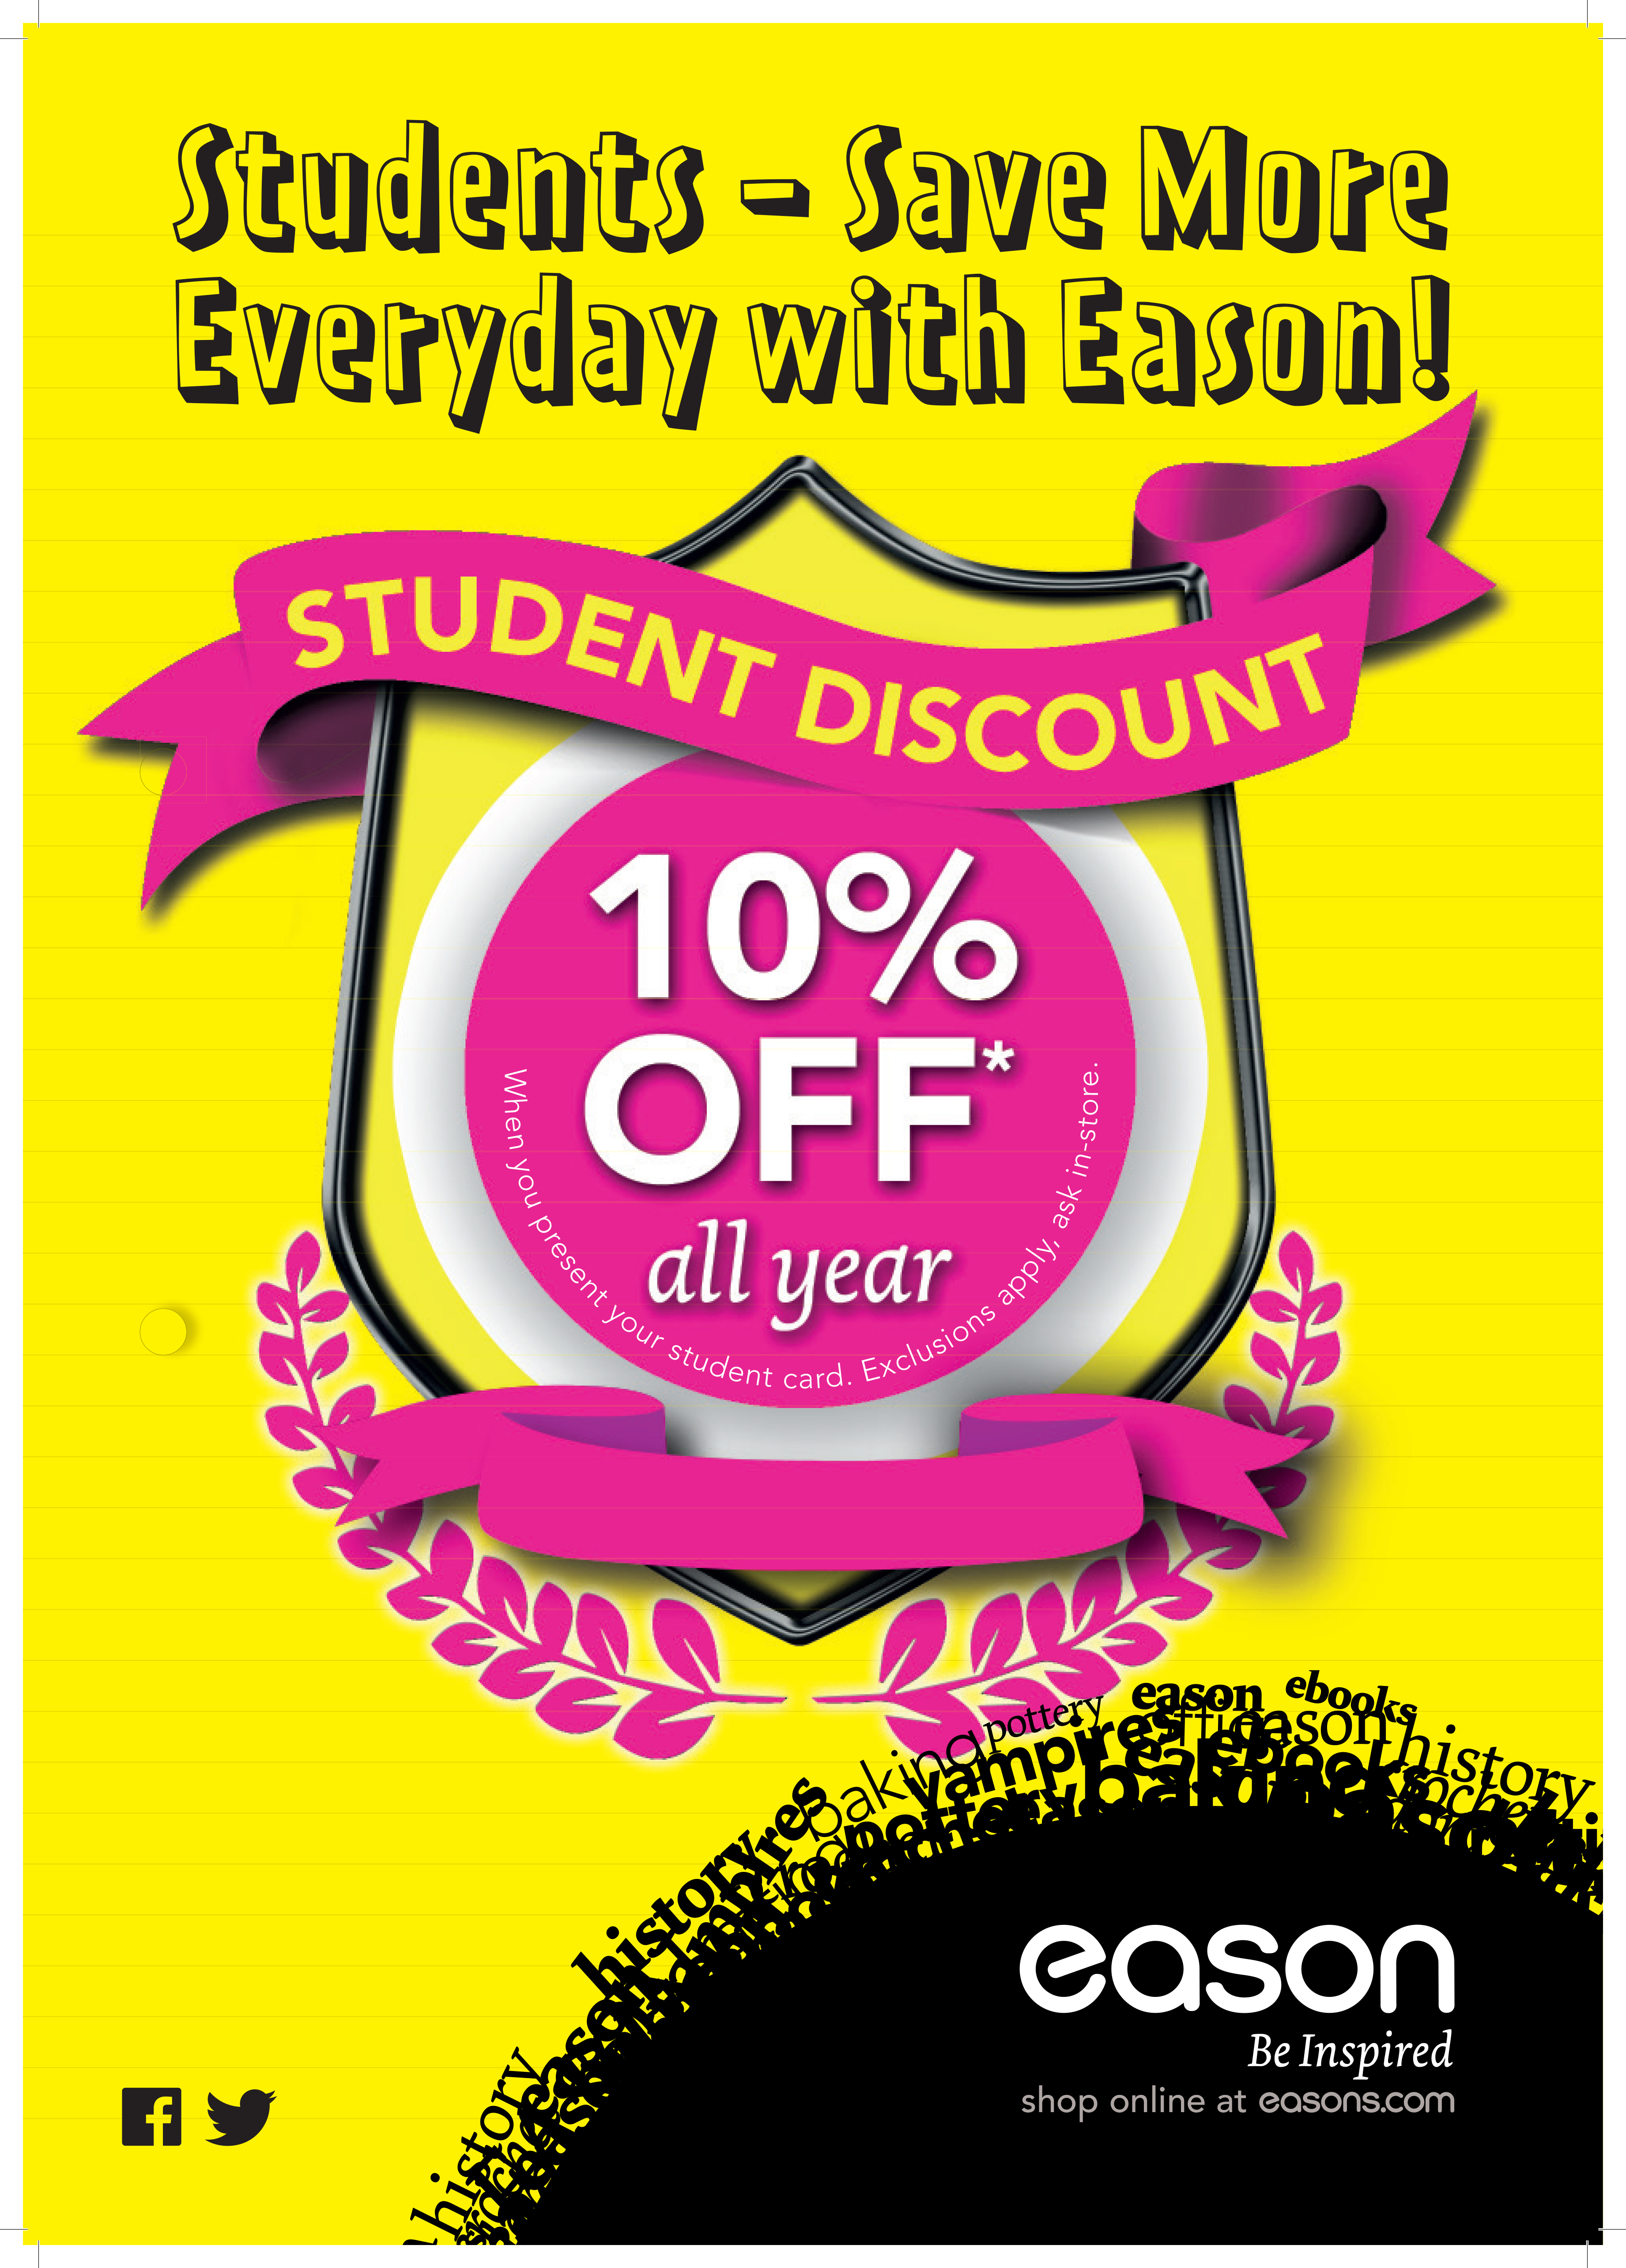 Students - Save More Everyday with Eason!